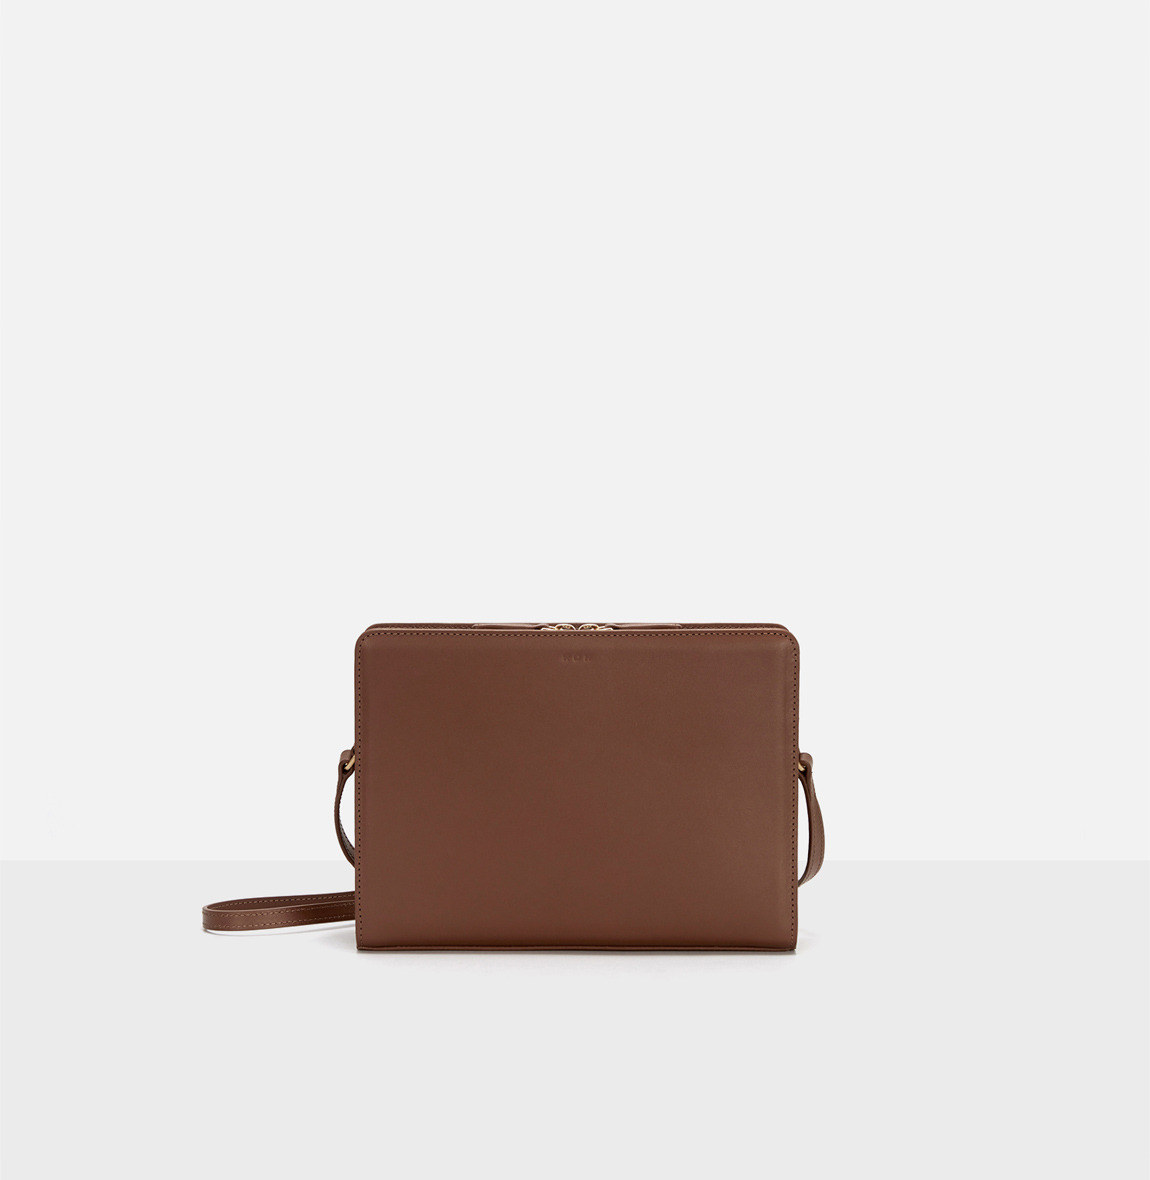 Square medium shoulder bag Smoky Tan